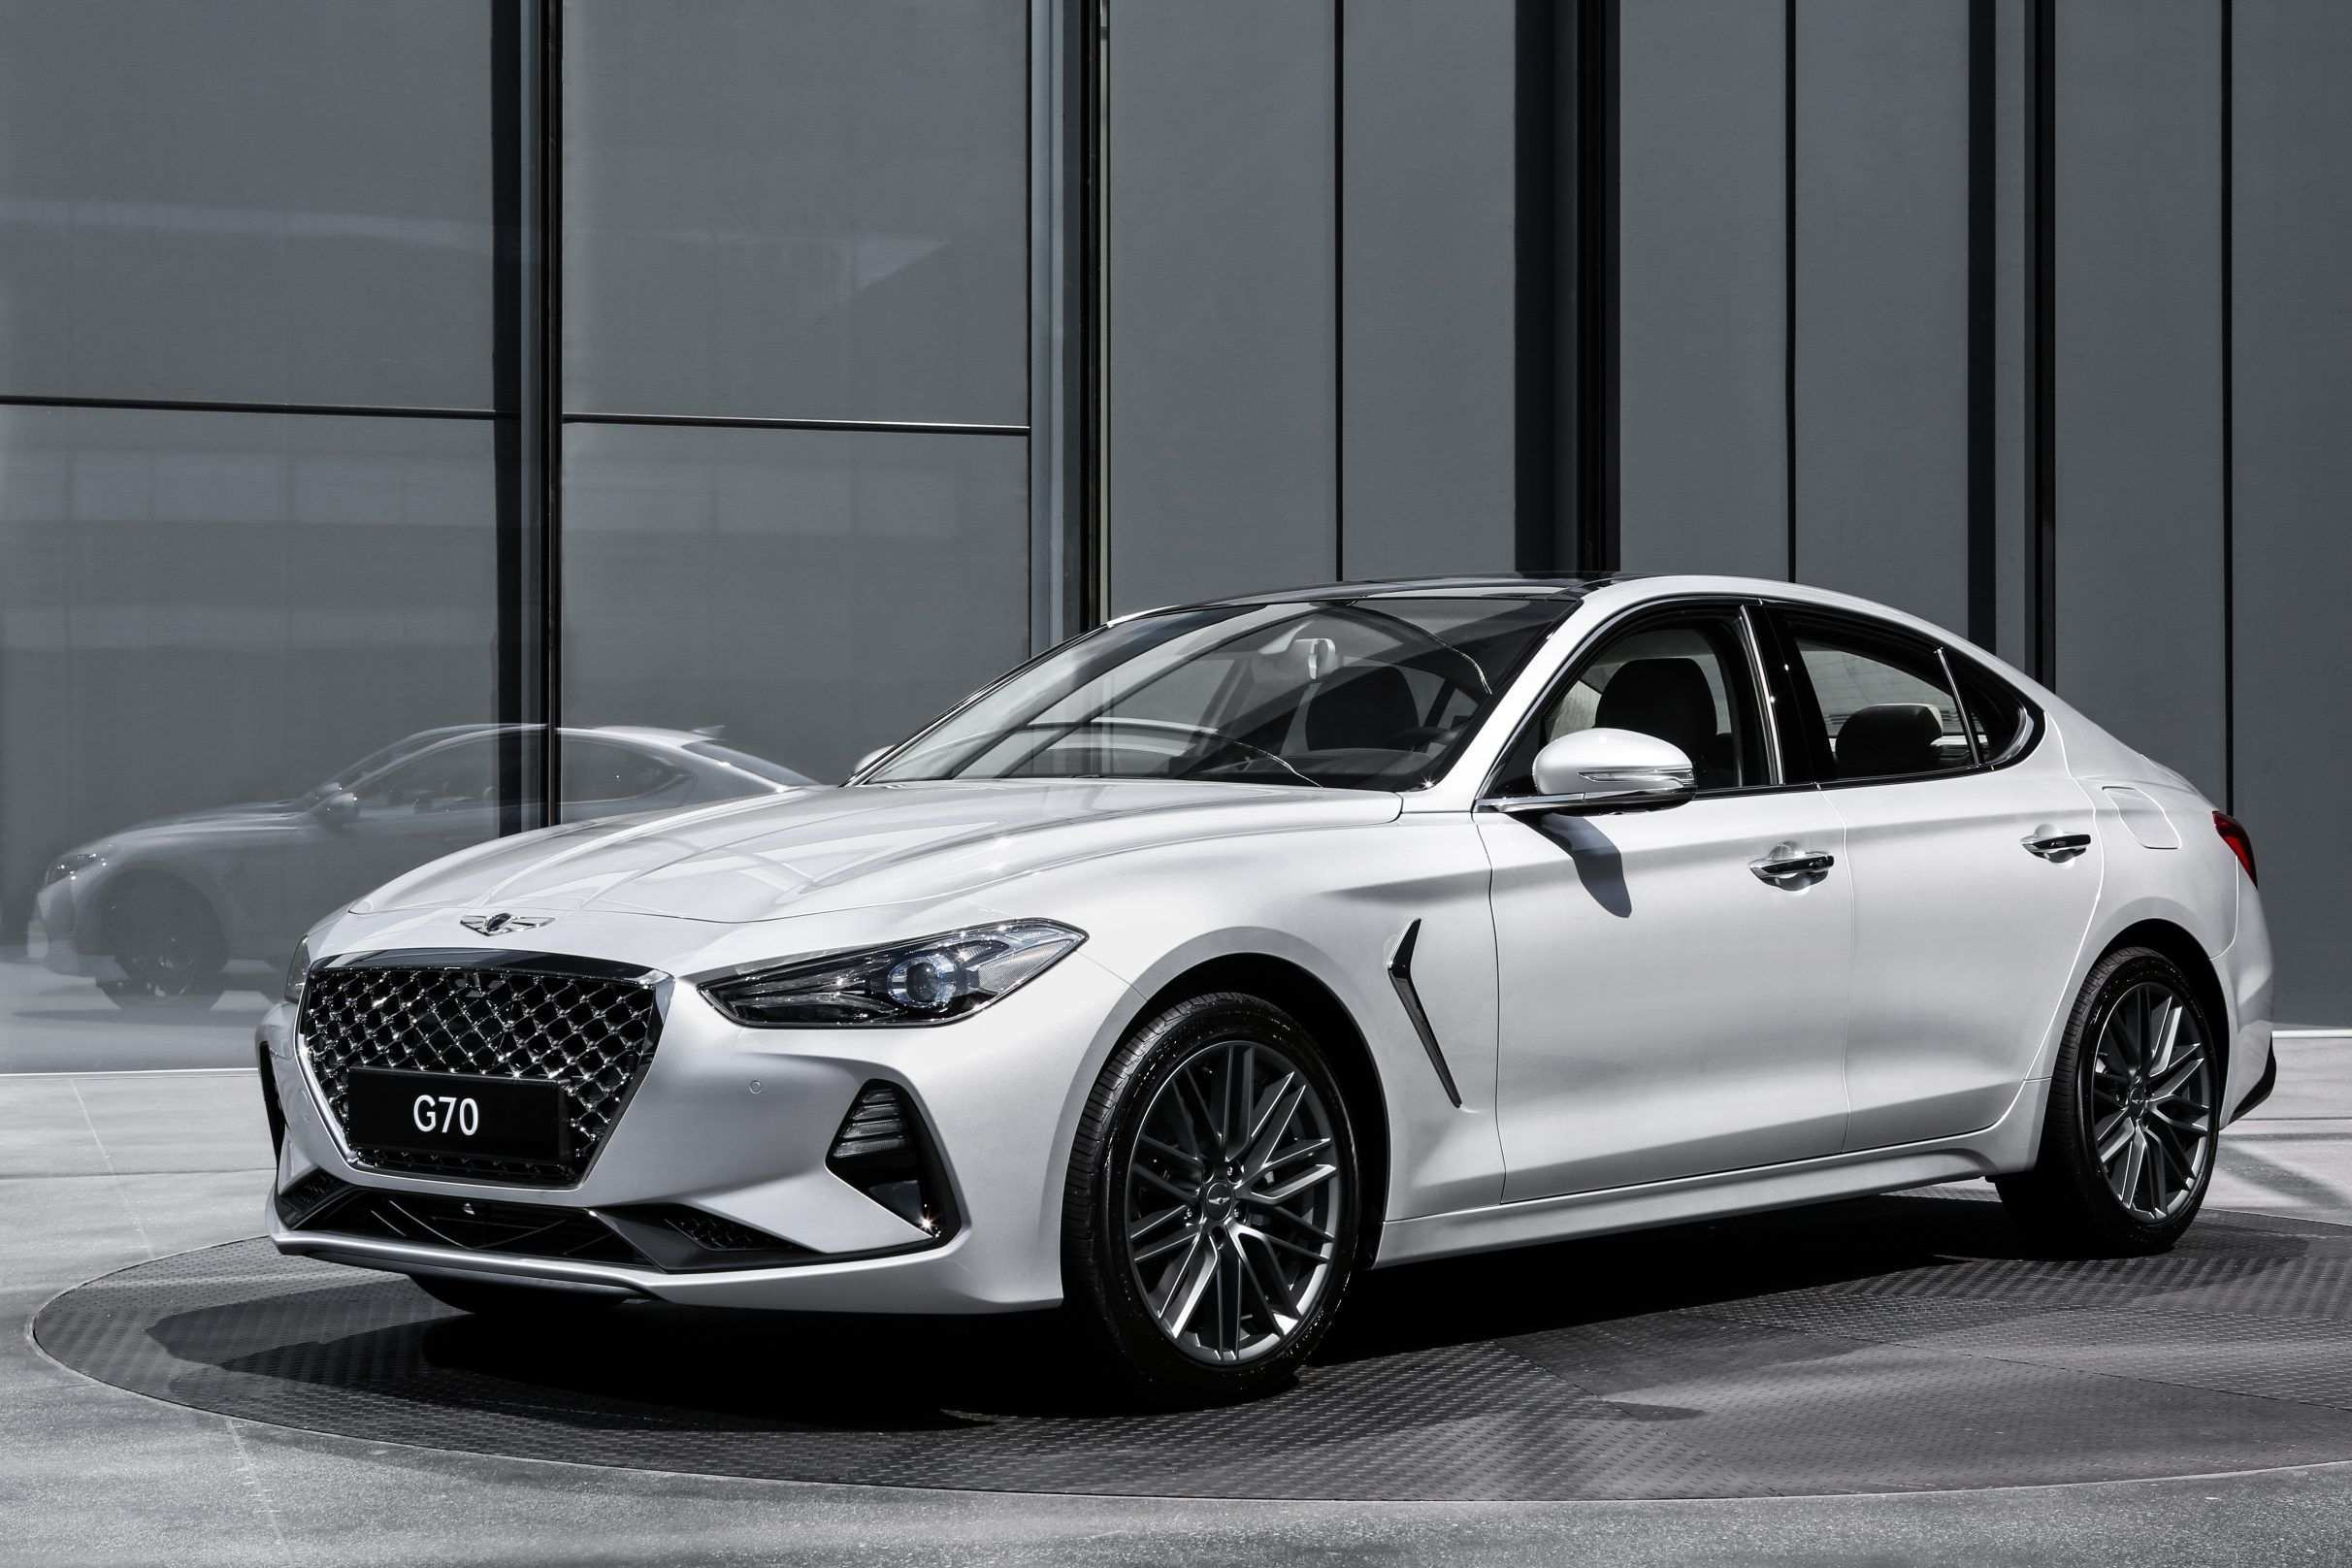 36 The 2019 Infiniti G70 Pricing